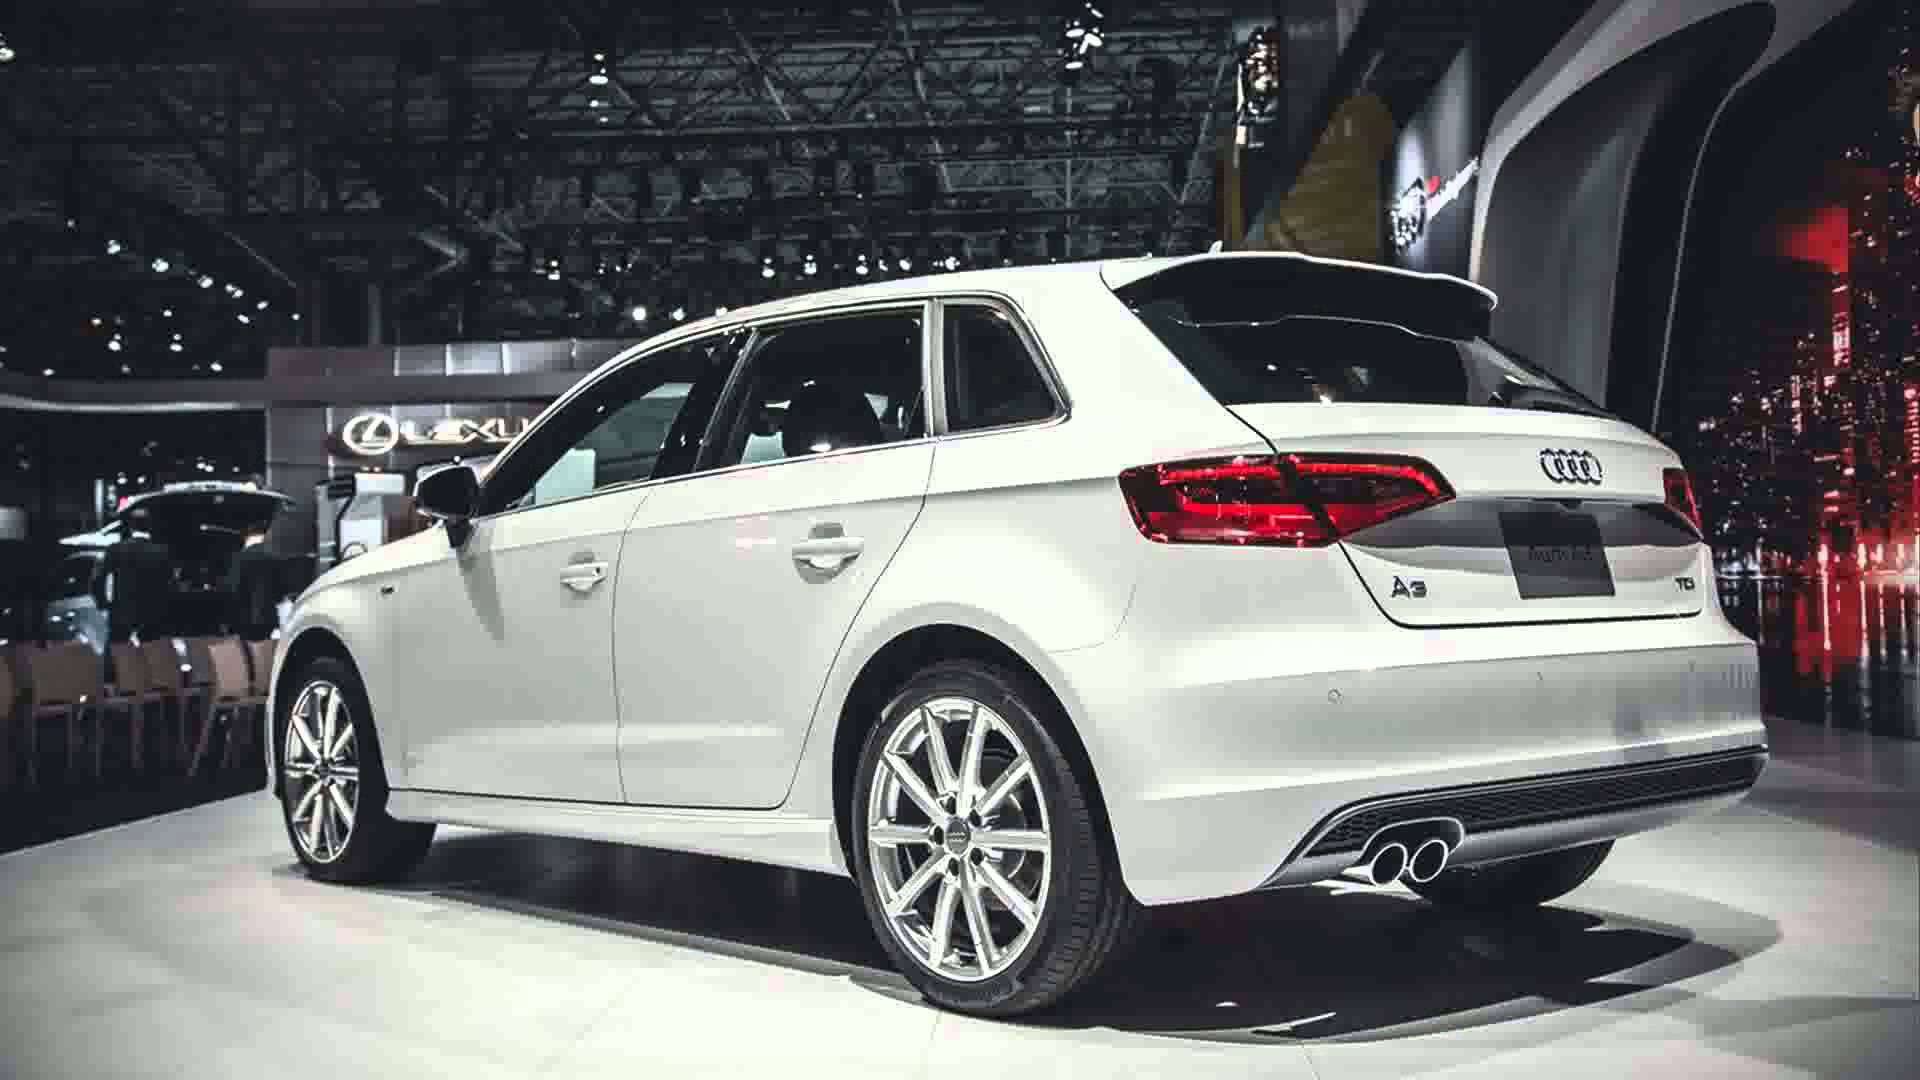 2016 Audi A3 sportback (8p) - pictures, information and ...